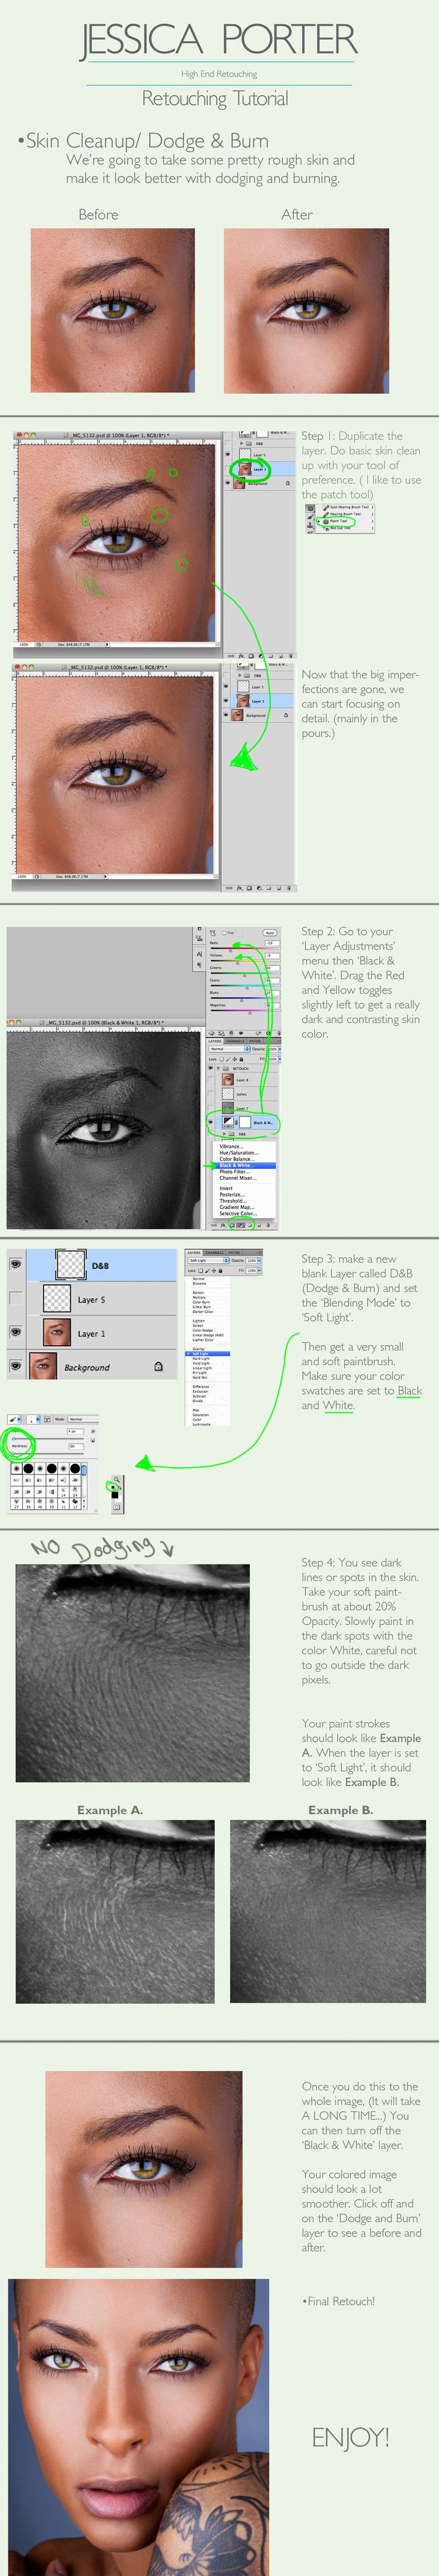 Advanced Skin Retouching Tutorial by ~PorterRetouching on deviantART. Really good tutorial, must see this.